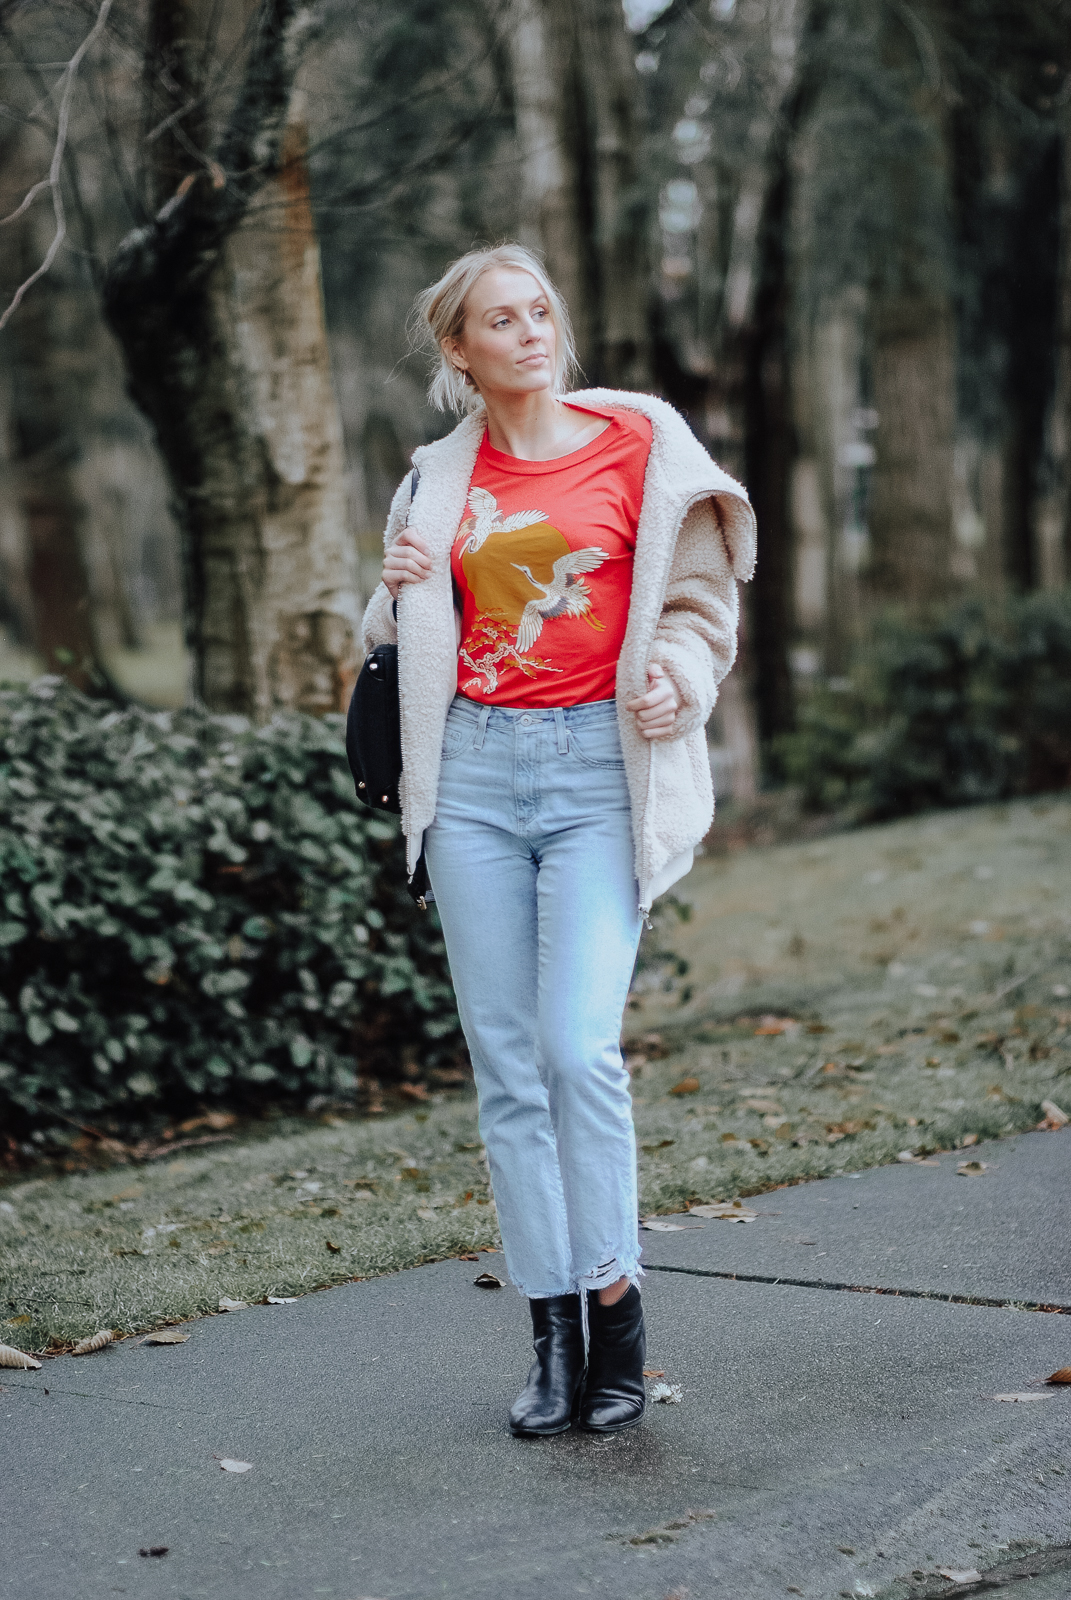 Autumn Sorelle | About Me | Urban Outfitters | Graphic Tee